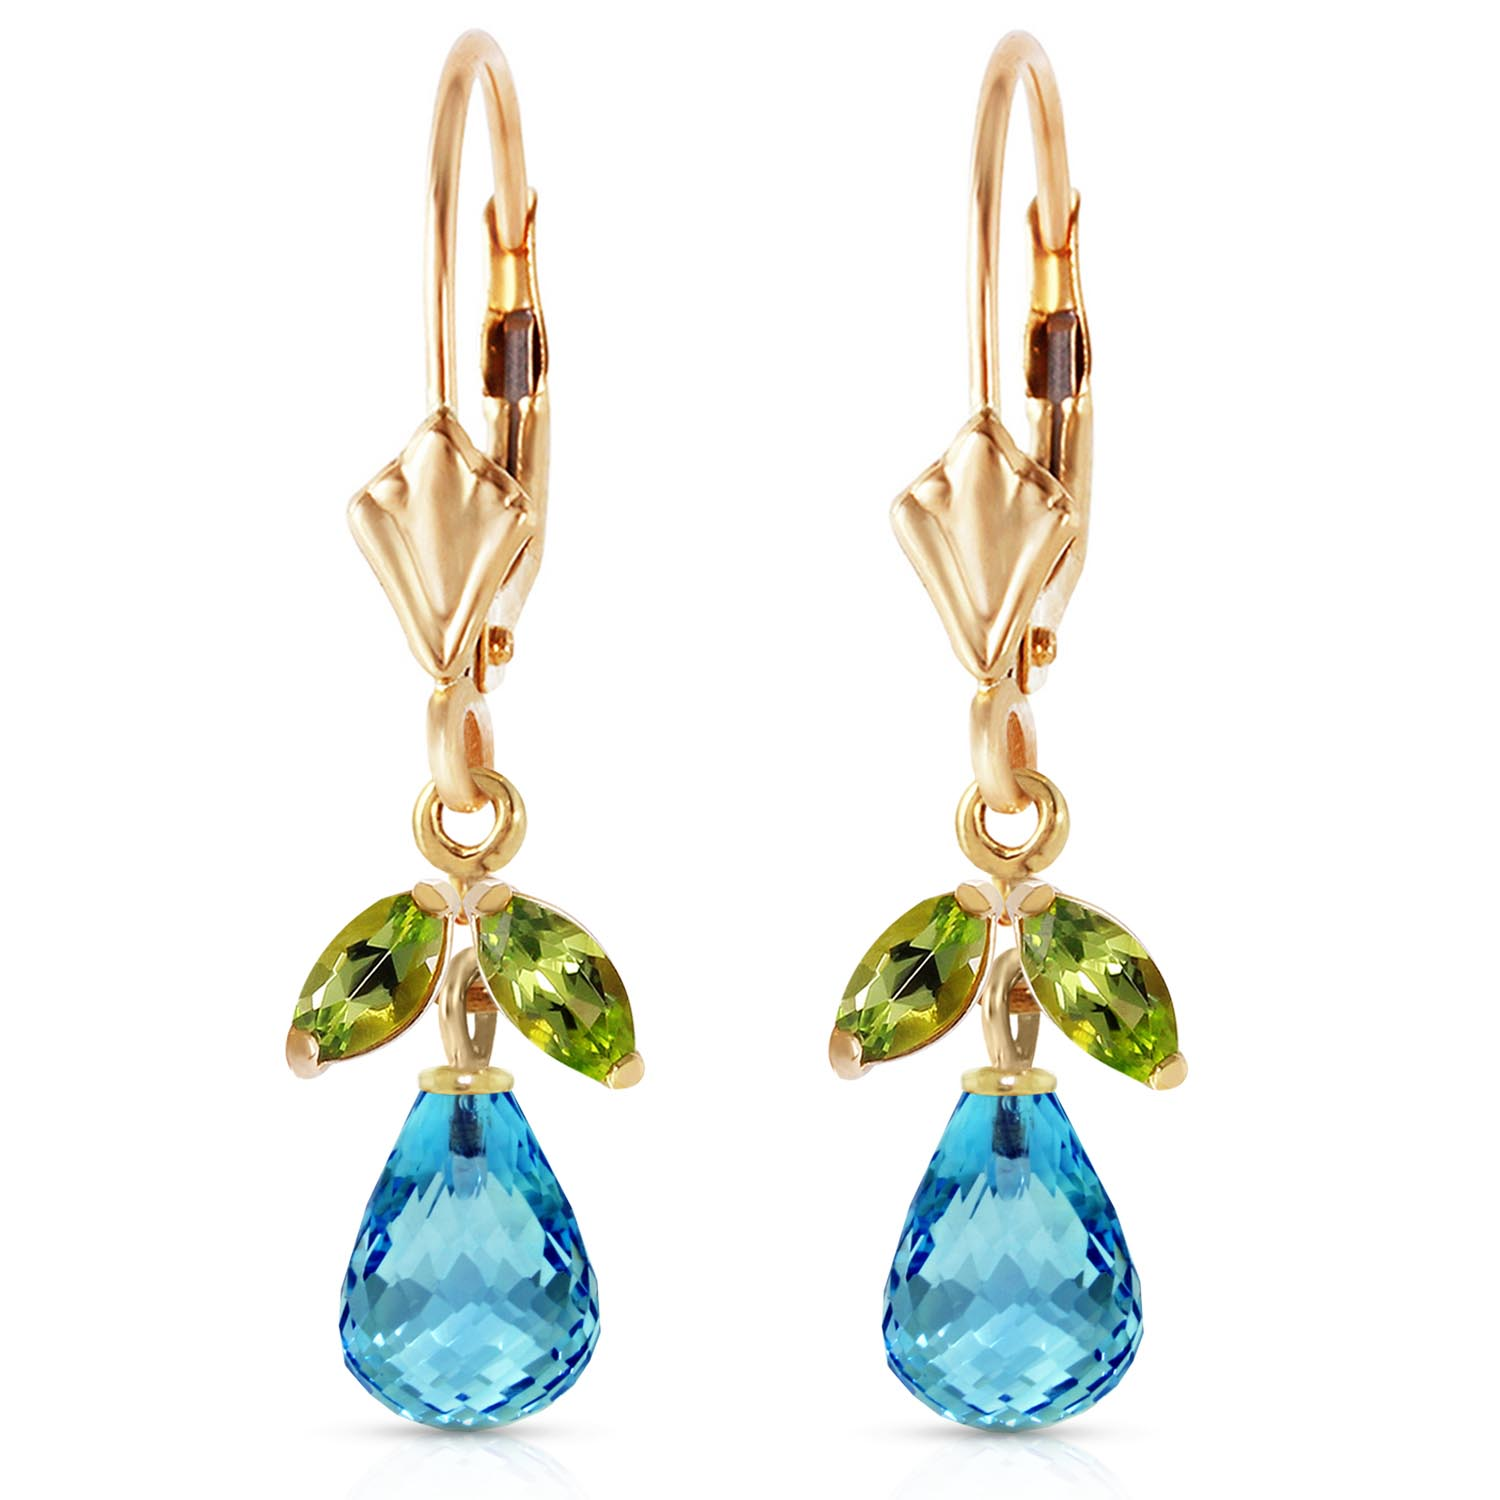 Blue Topaz and Peridot Snowdrop Earrings 3.4ctw in 9ct Gold